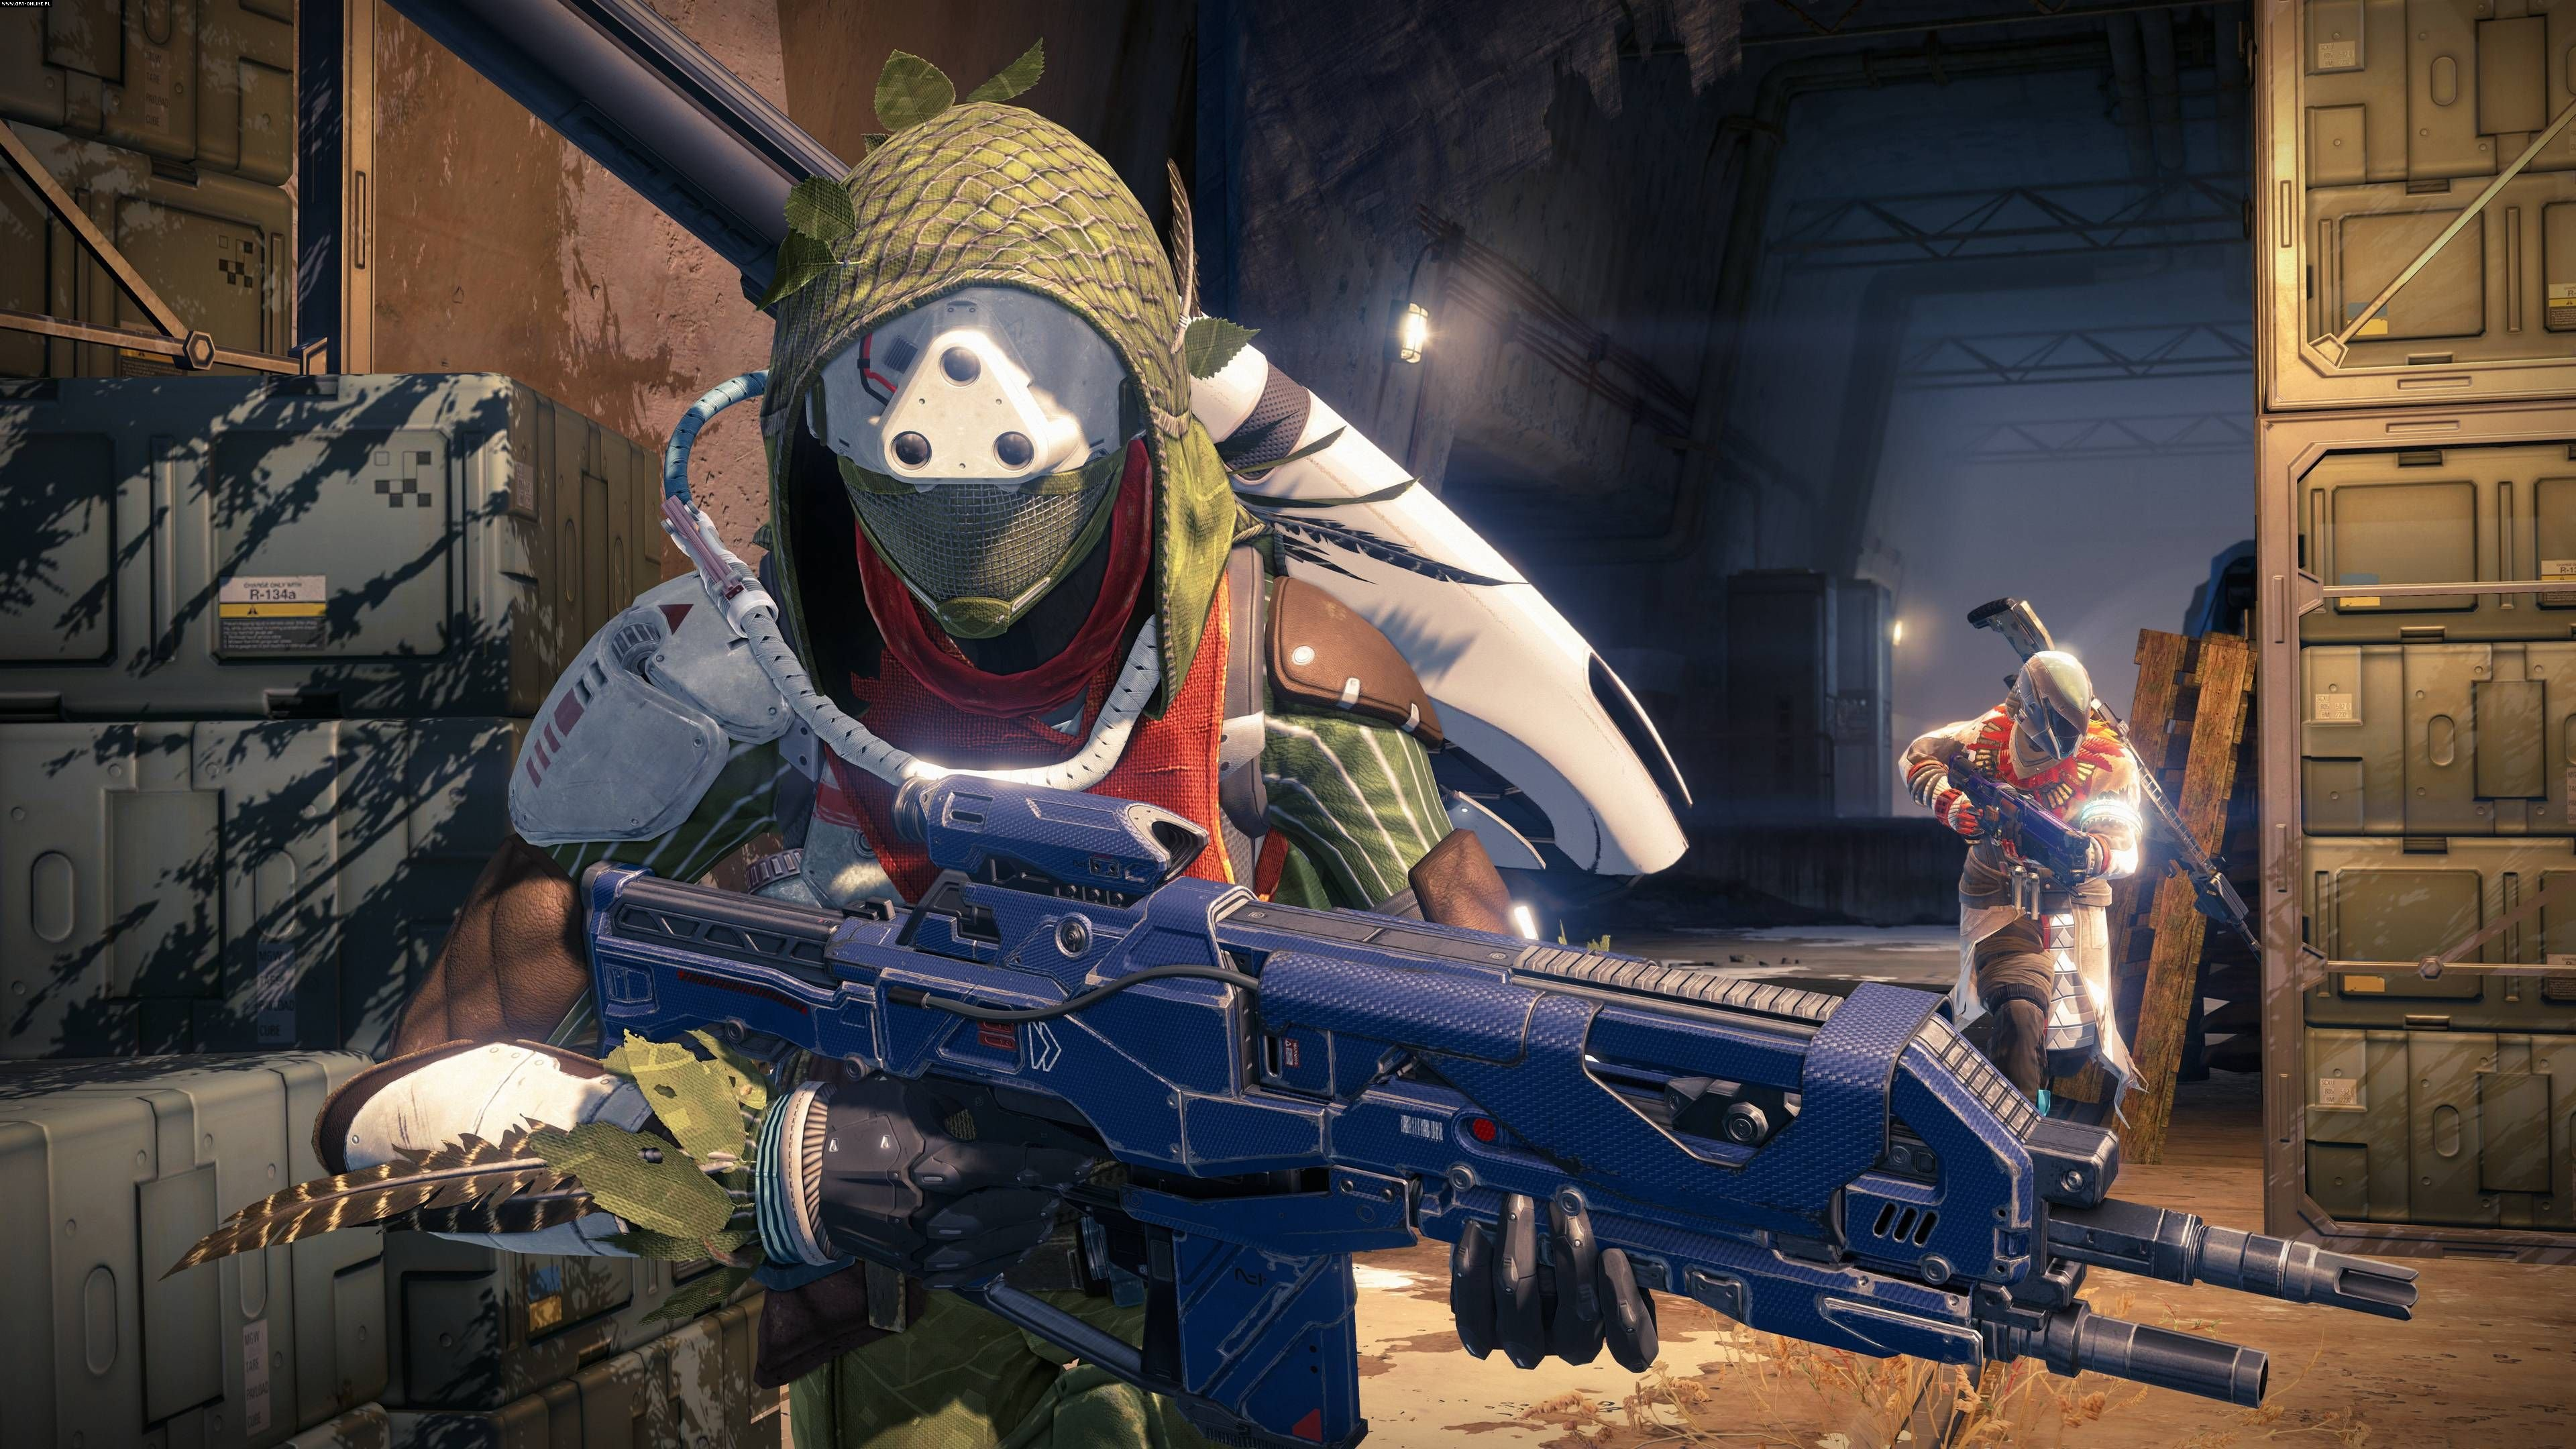 Destiny: The Taken King PS4, XONE Games Image 31/81, Bungie Software, Activision Blizzard